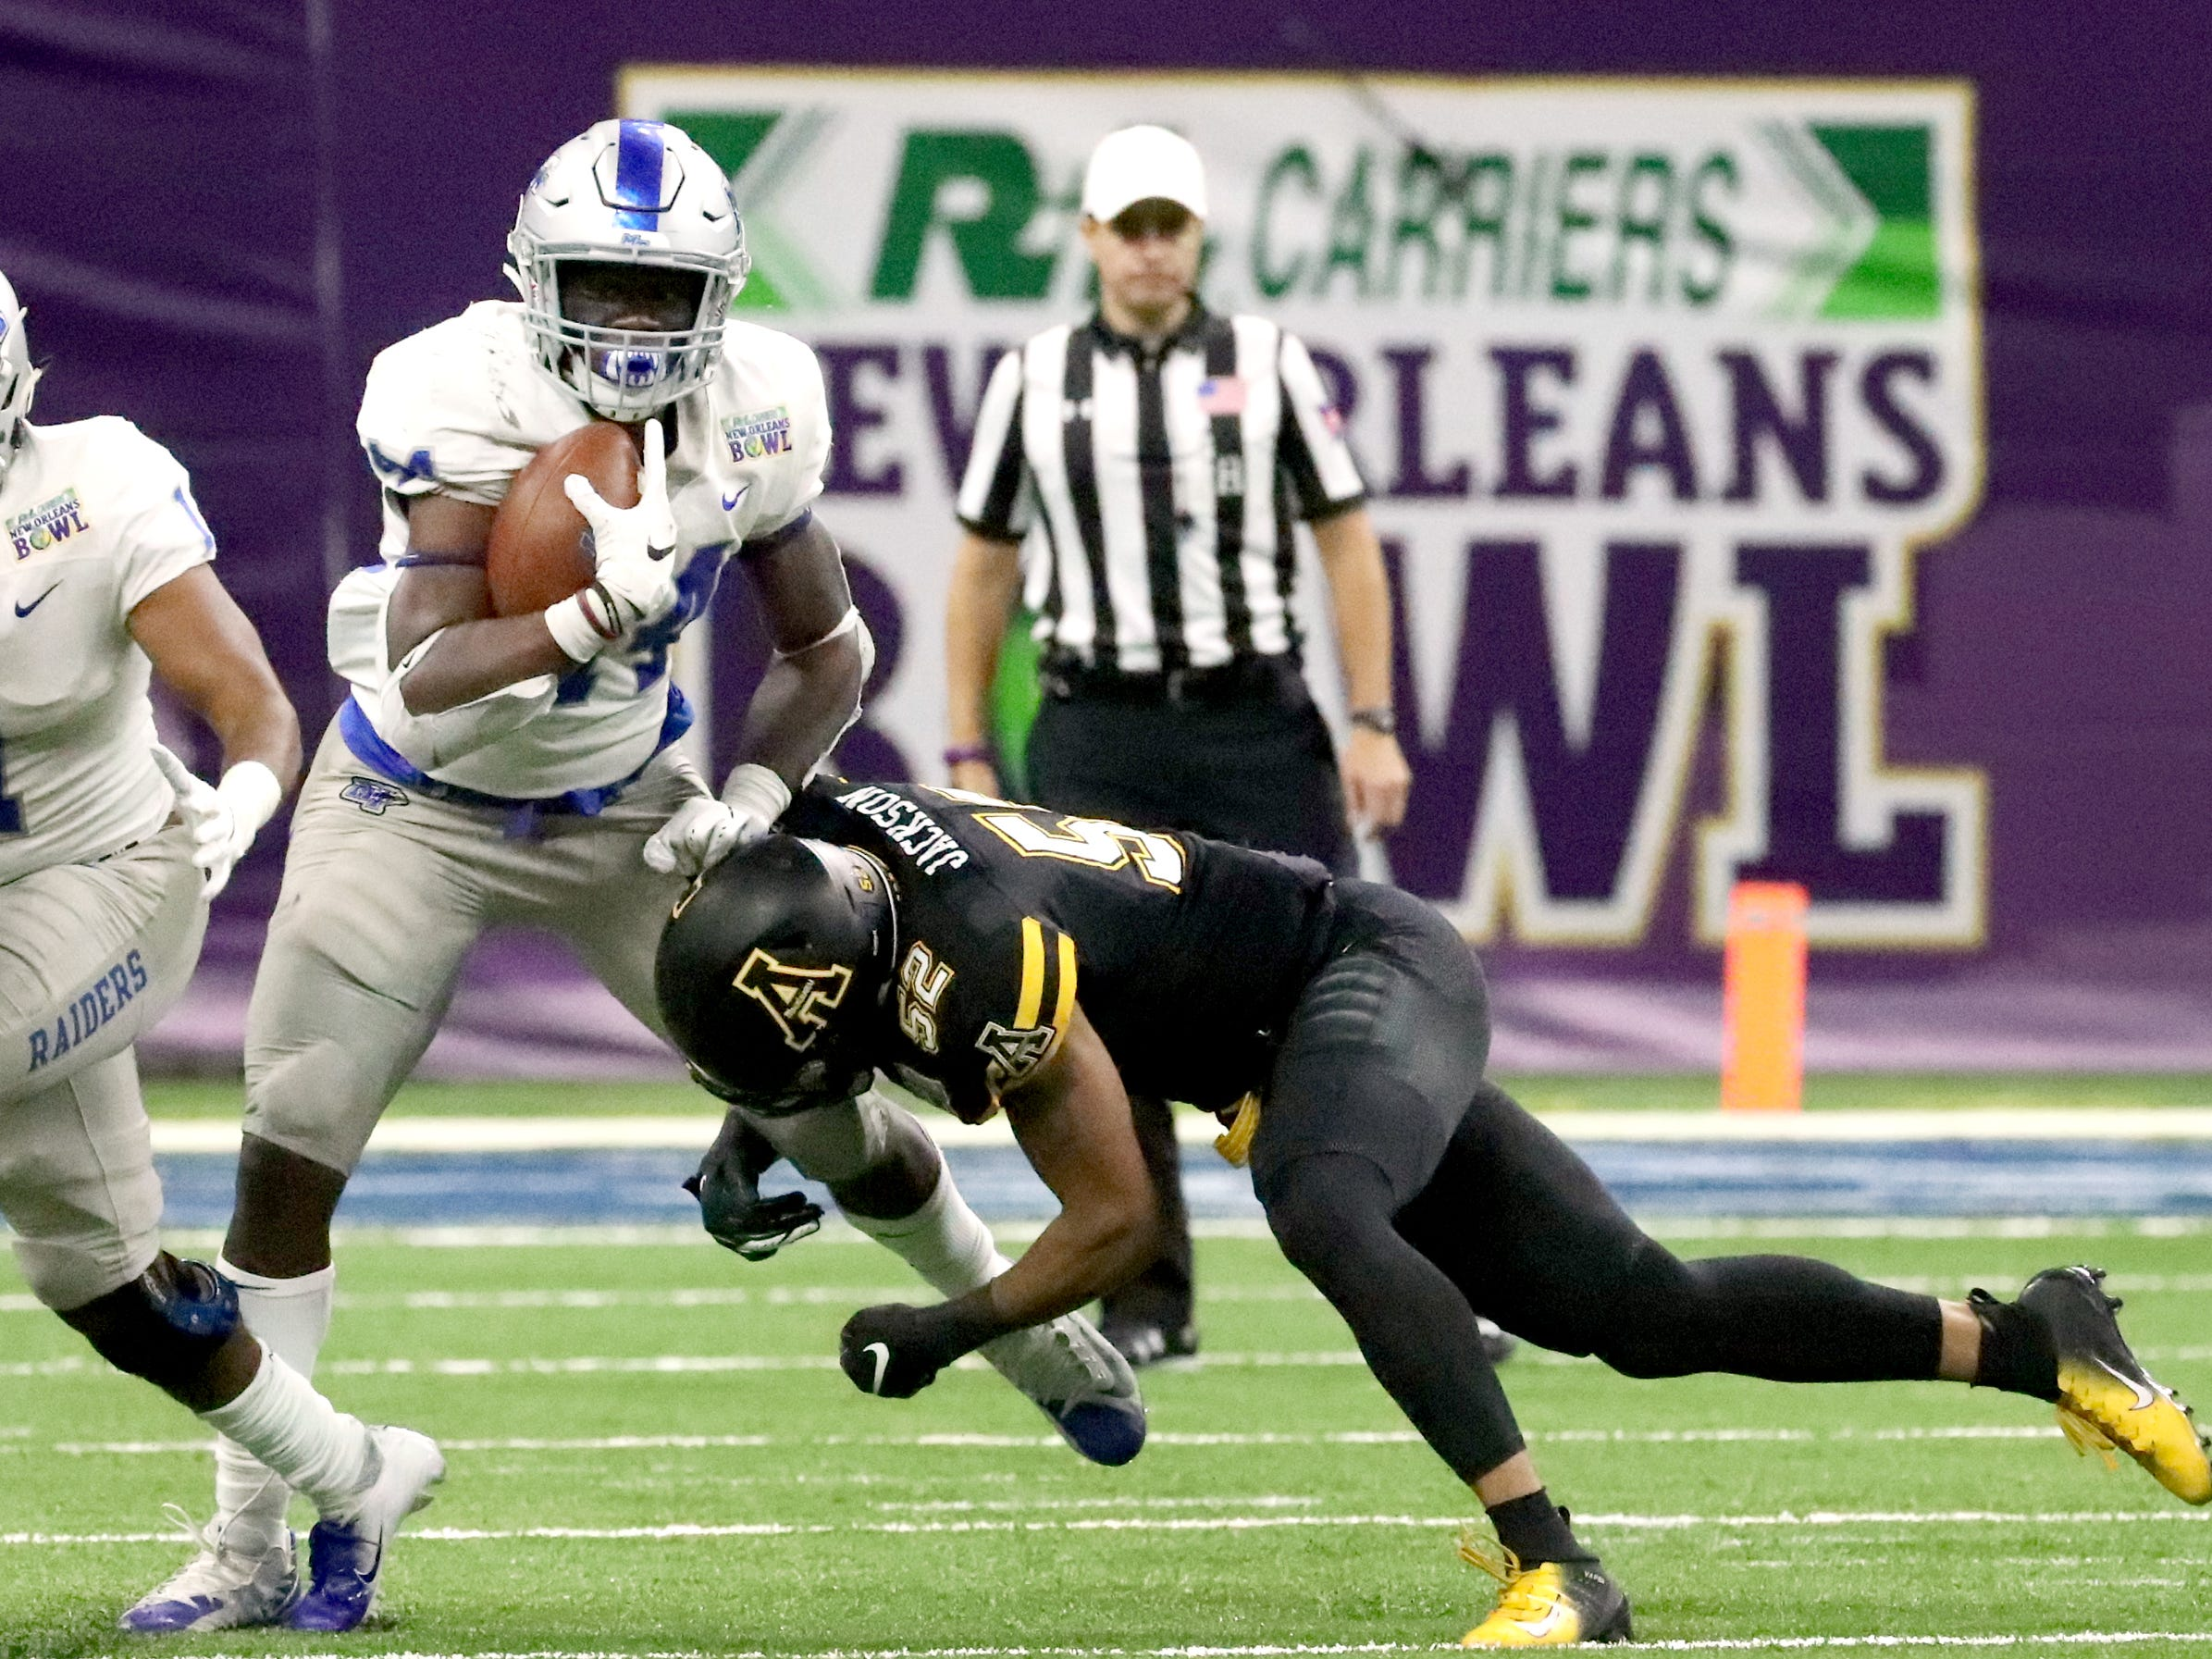 Middle Tennessee Blue Raiders running back Chaton Mobley (44) runs the ball as Appalachian State Mountaineers linebacker D'Marco Jackson (52) tackles him on Saturday, Dec. 15, 2018, during the New Orleans Bowl.